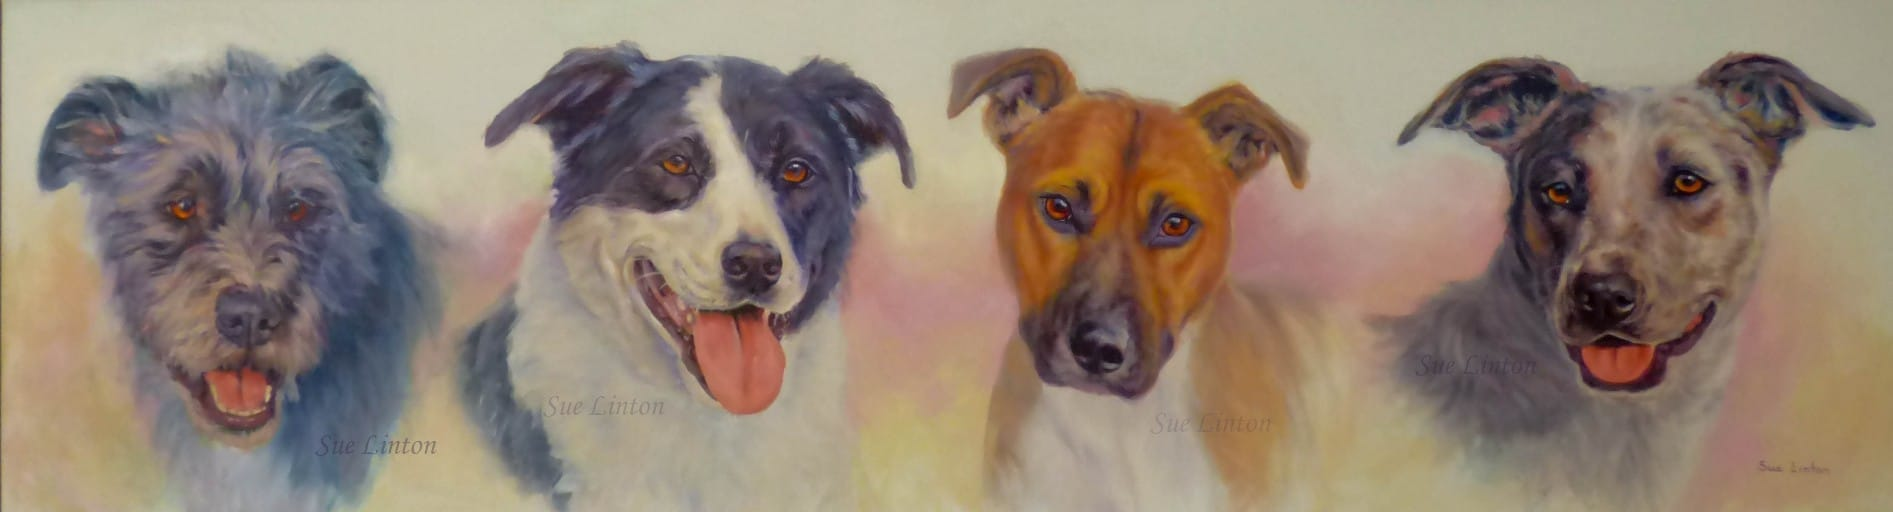 A pet portrait of 4 loved dogs